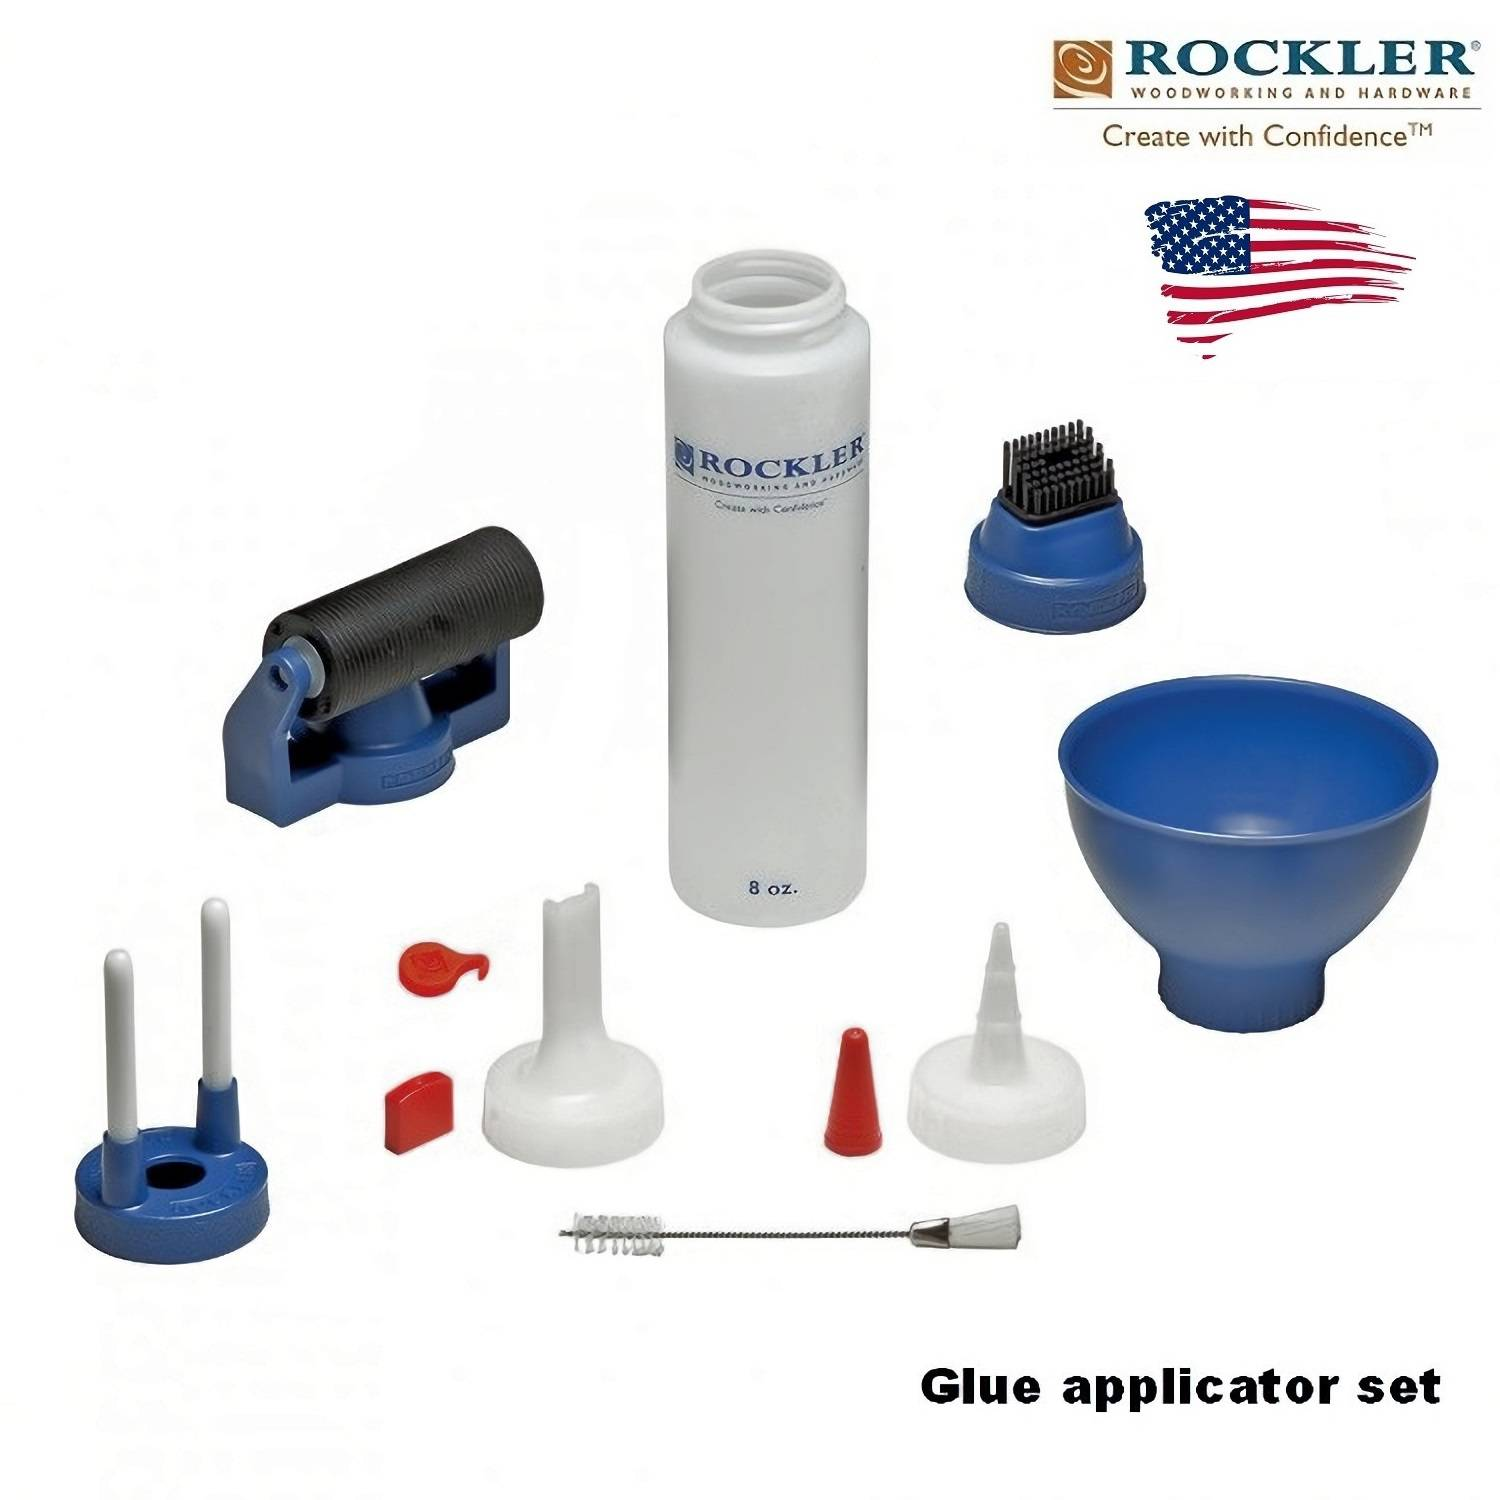 lijm-applicator-set-Rockler.jpg